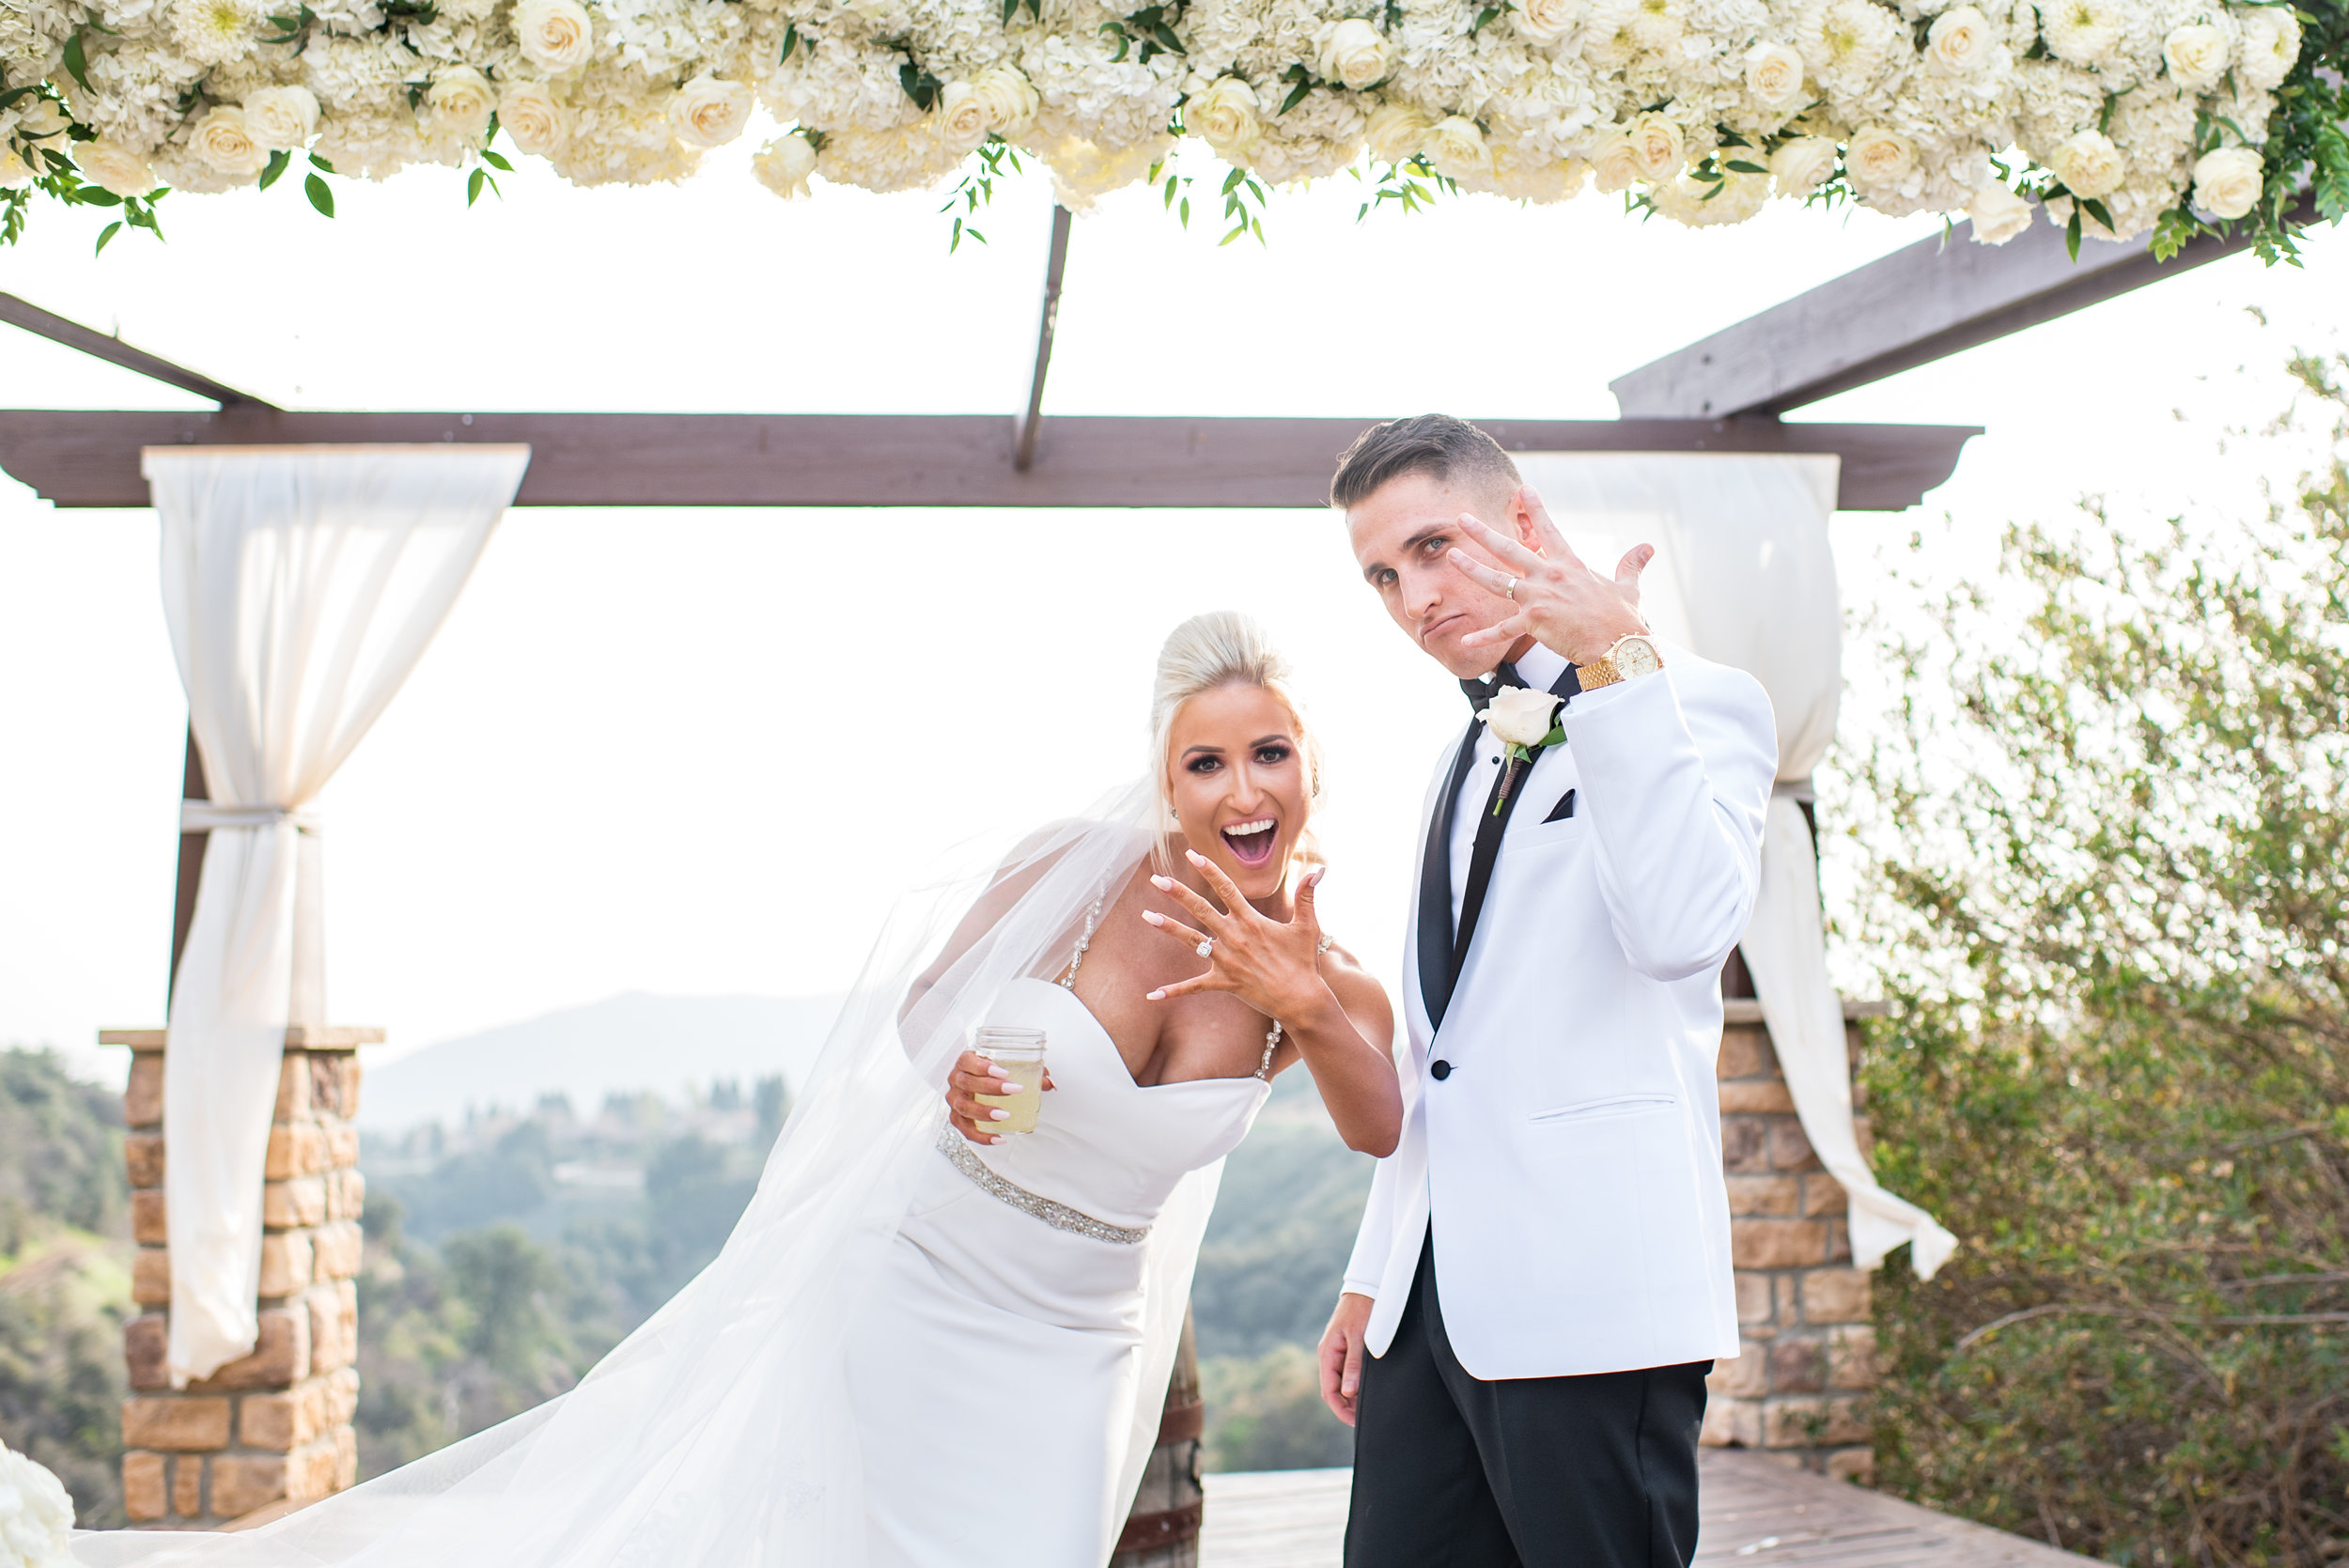 Kelly & Austin- Yucaipa, CA Wedding Filled with Surprises